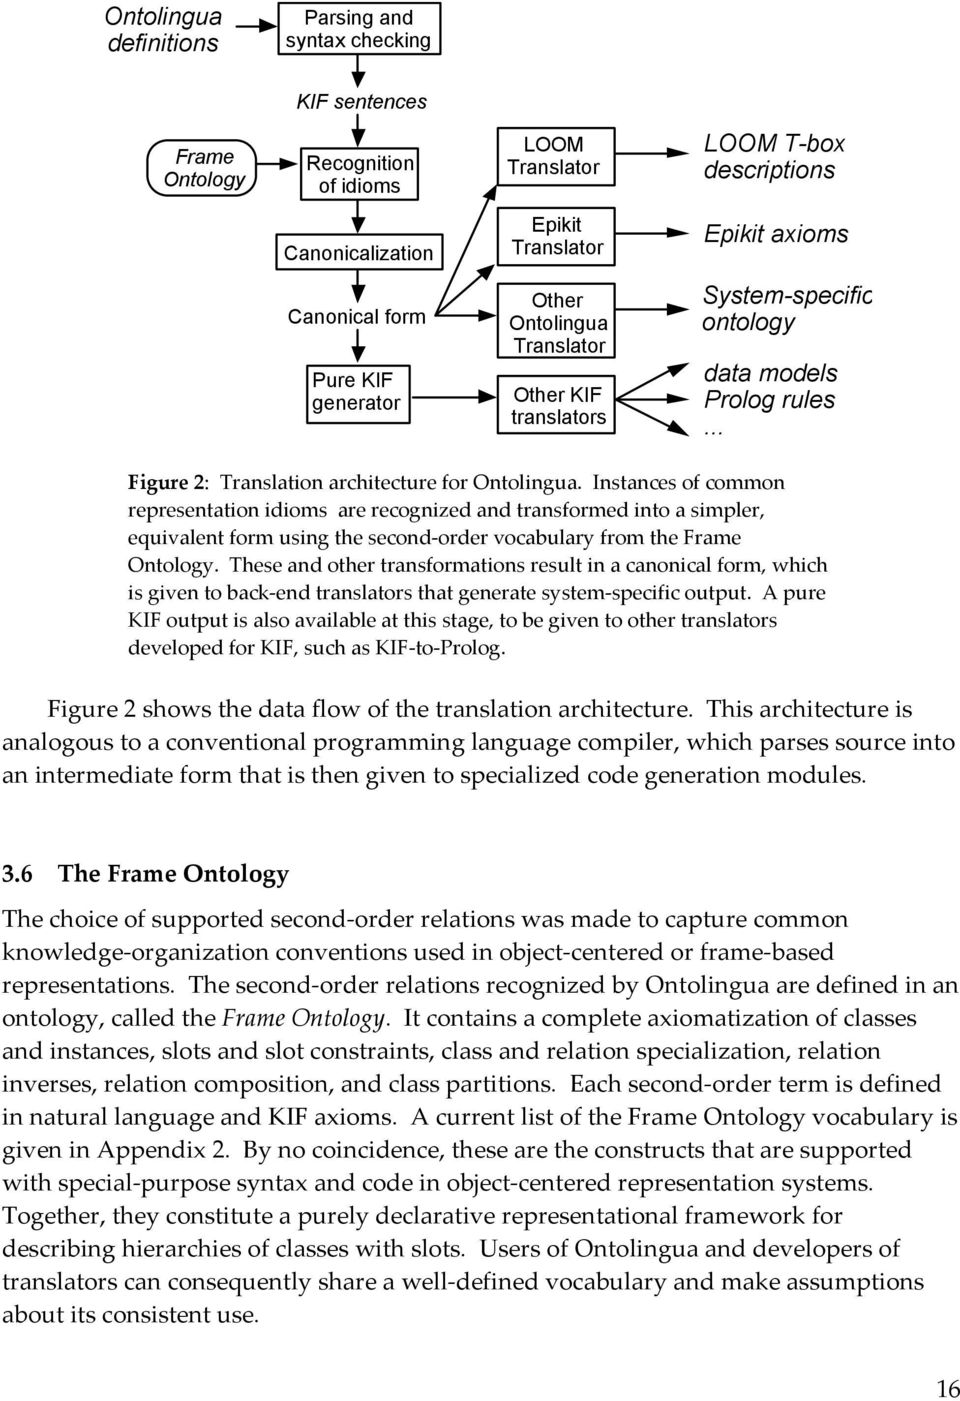 Instances of common representation idioms are recognized and transformed into a simpler, equivalent form using the second-order vocabulary from the Frame Ontology.